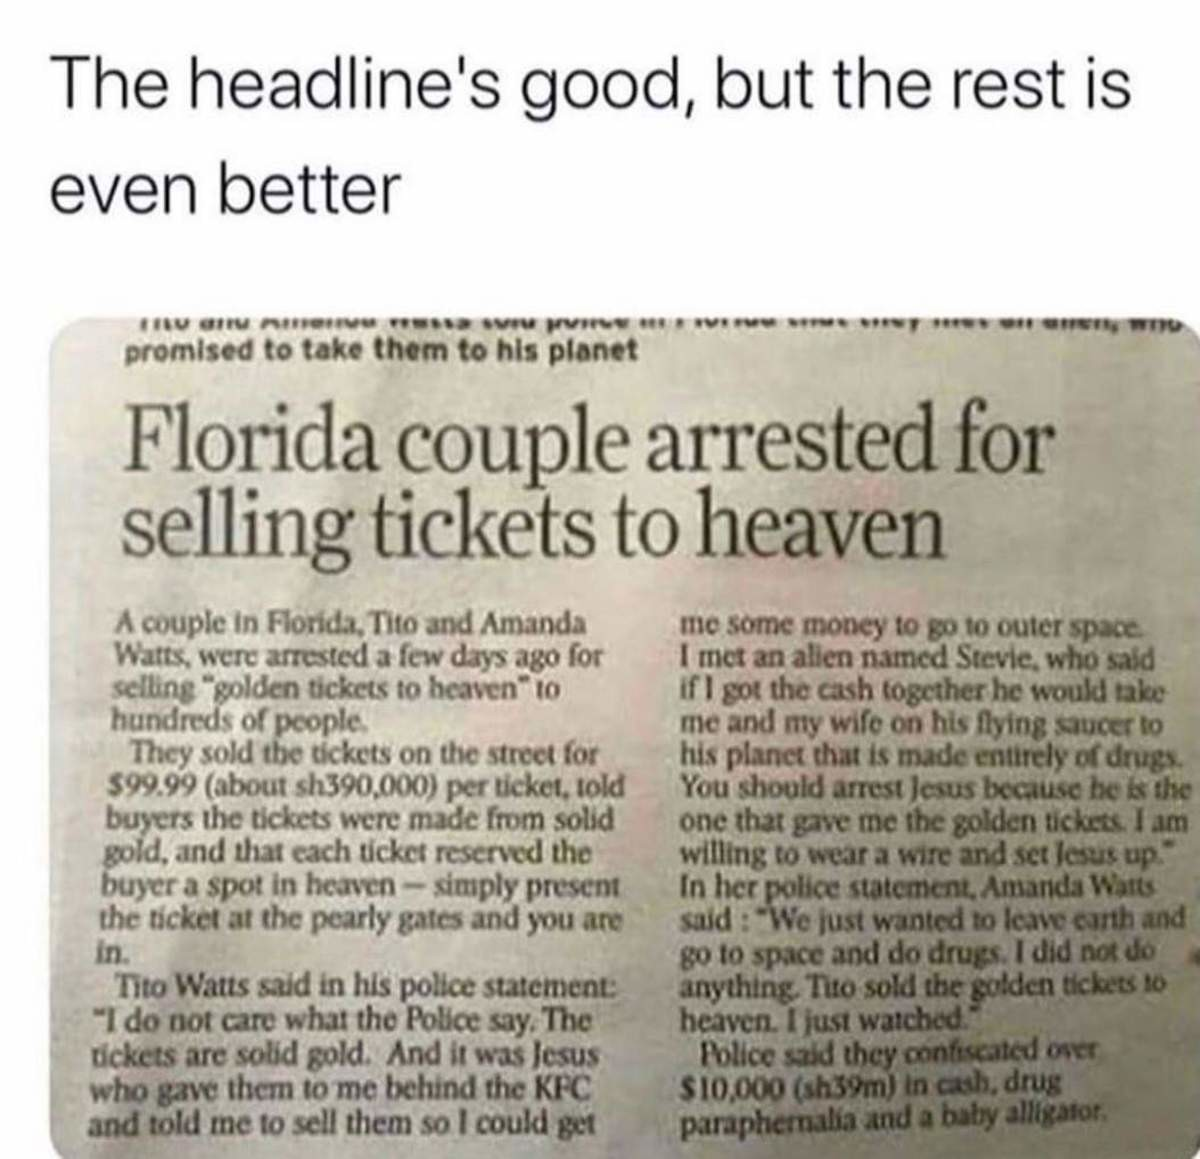 Florida. .. but when the priest does it it's okay and he doesn't pay taxes